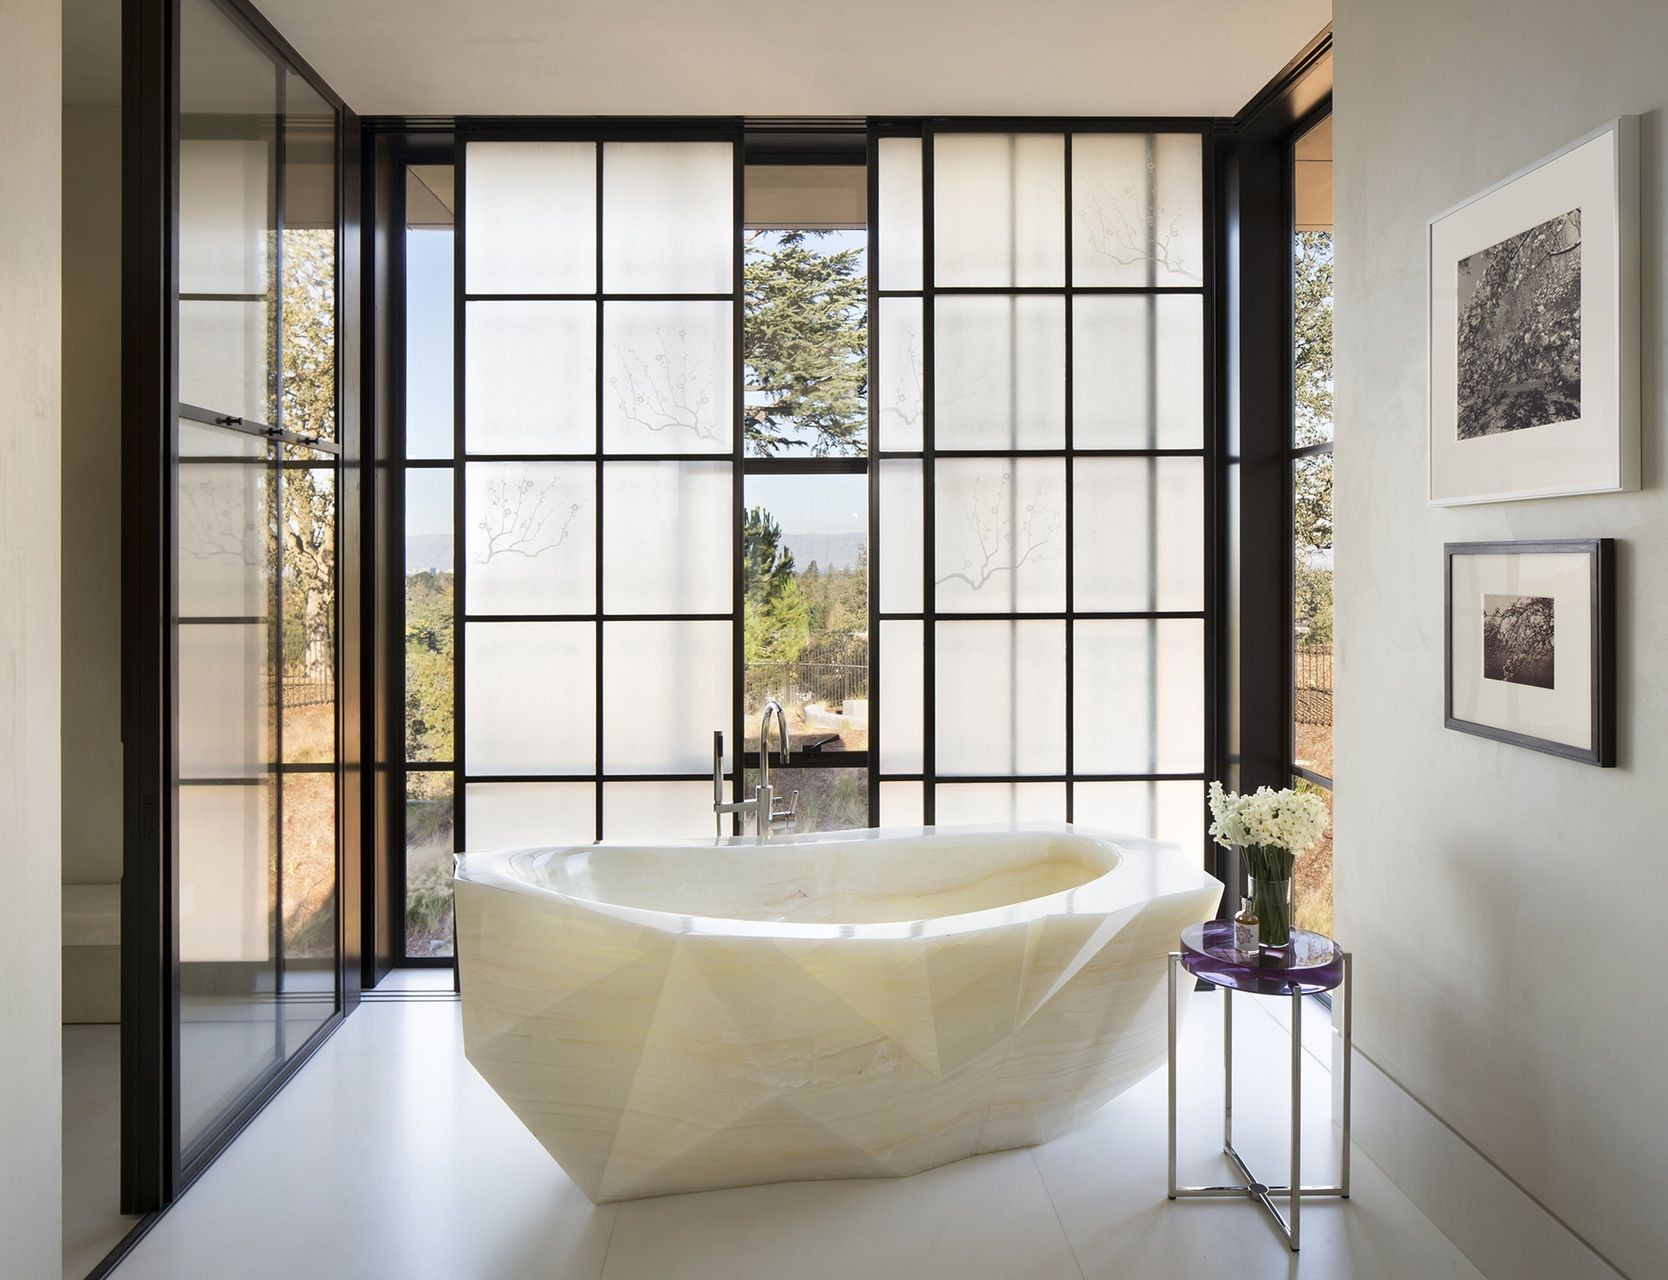 Designer: Kendall Wilkinson Fabulous onyx tub in a light filled ...